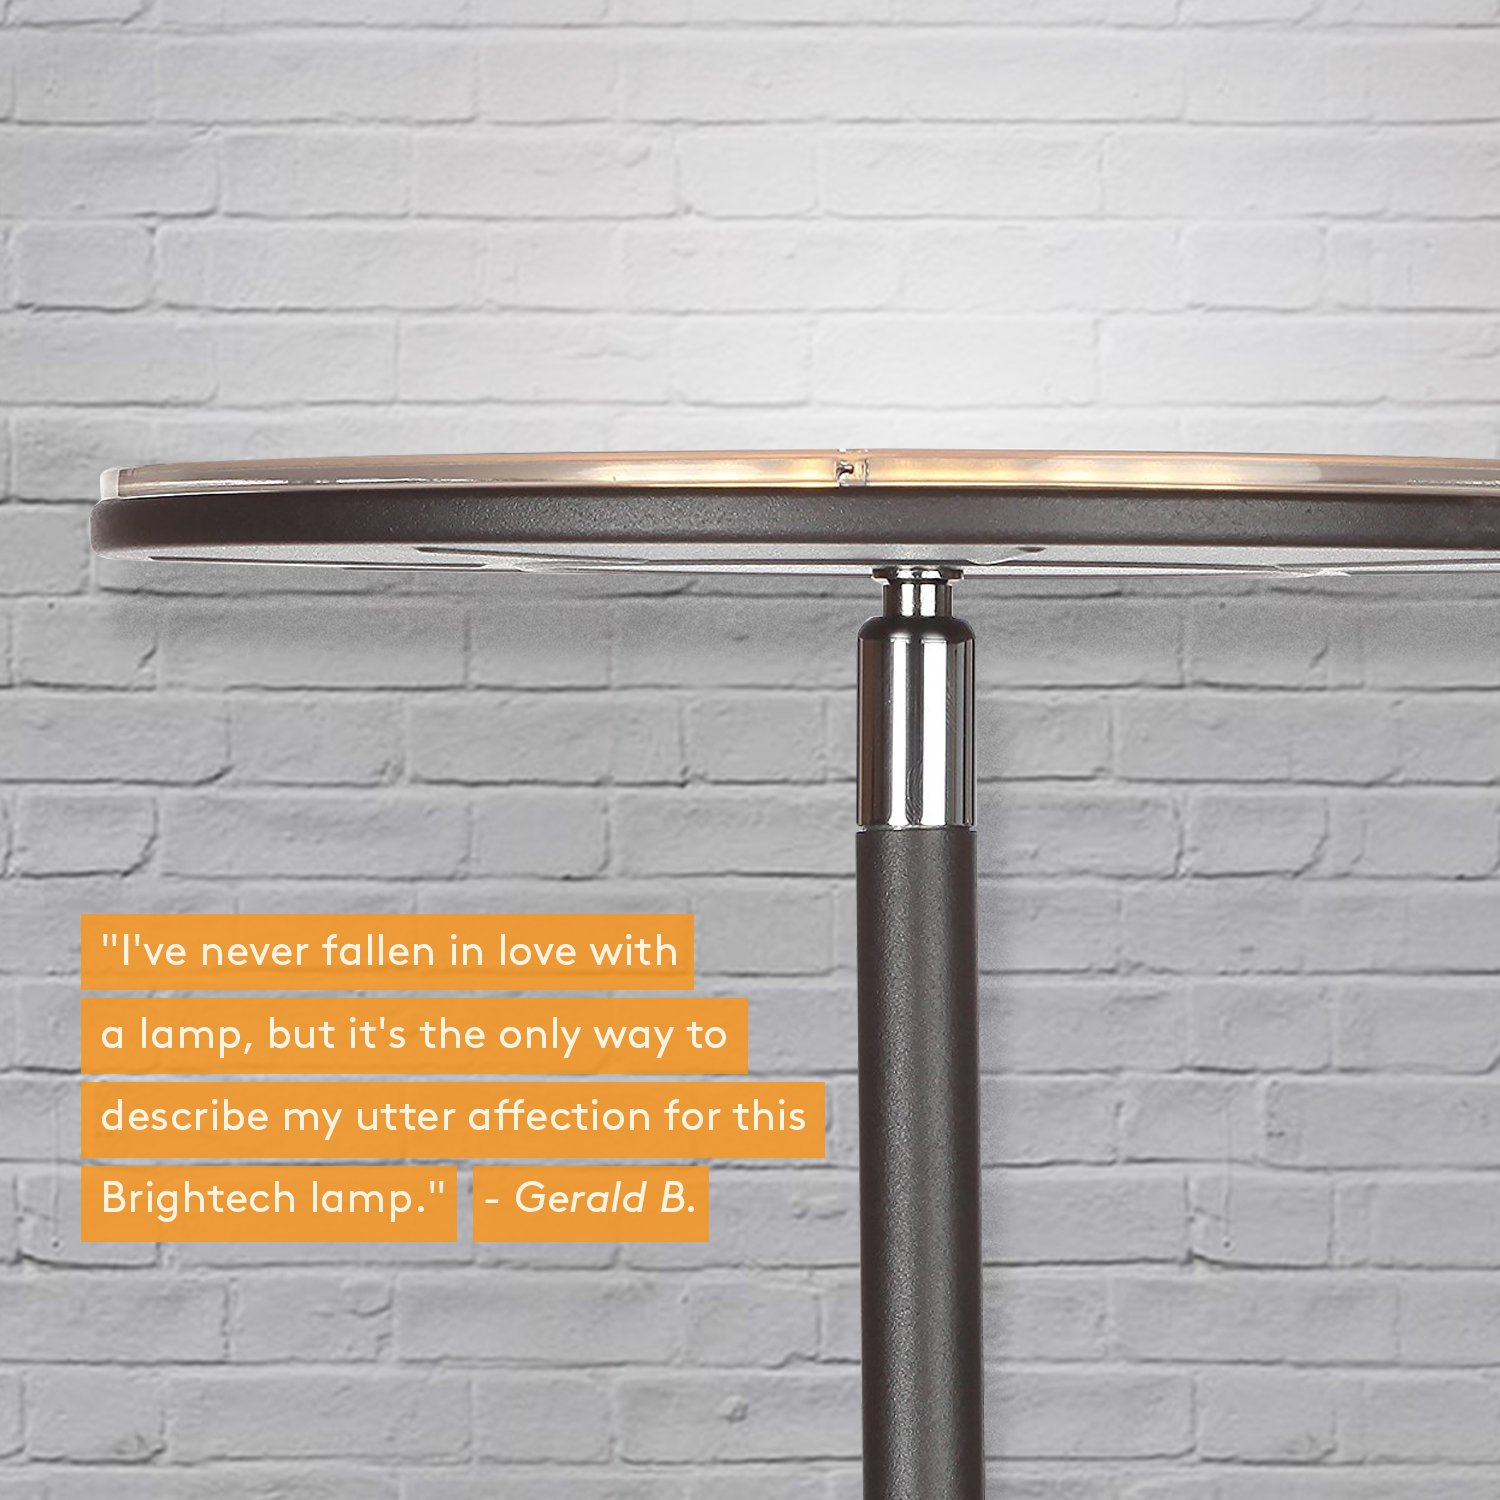 Brightech Sky LED Torchiere Super Bright Floor Lamp - Tall Standing Modern Pole Light for Living Rooms & Offices - Dimmable Uplight for Reading Books in Your Bedroom etc - Dark Bronze by Brightech (Image #3)